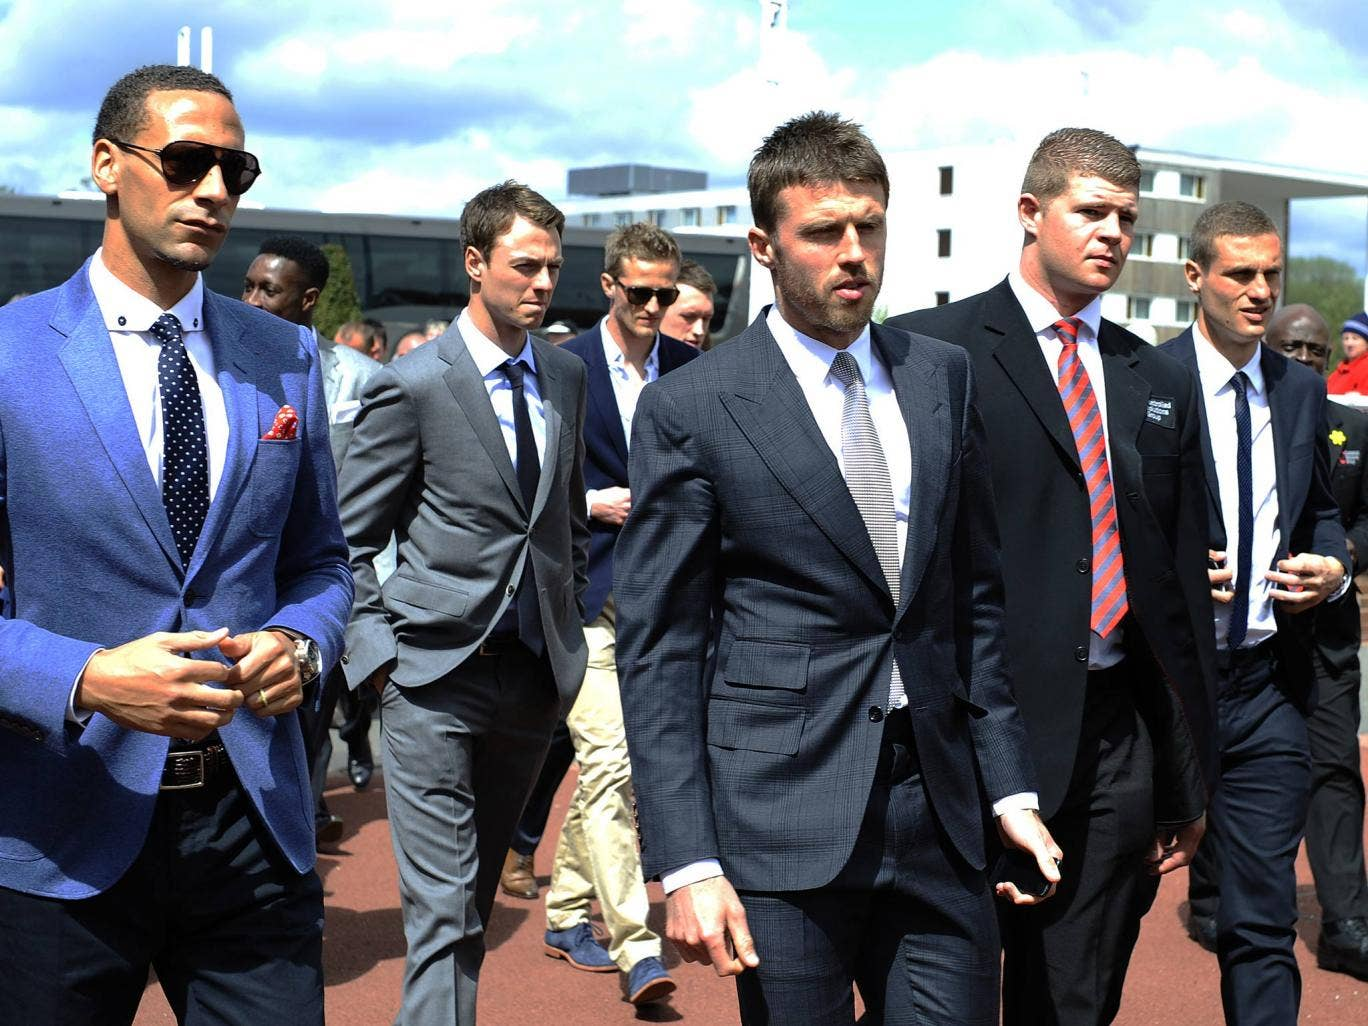 Rio Ferdinand, Jonny Evans, Michael Carrick and Nemanja Vidic at Chester Races following the announcement Sir Alex Ferguson is stepping down